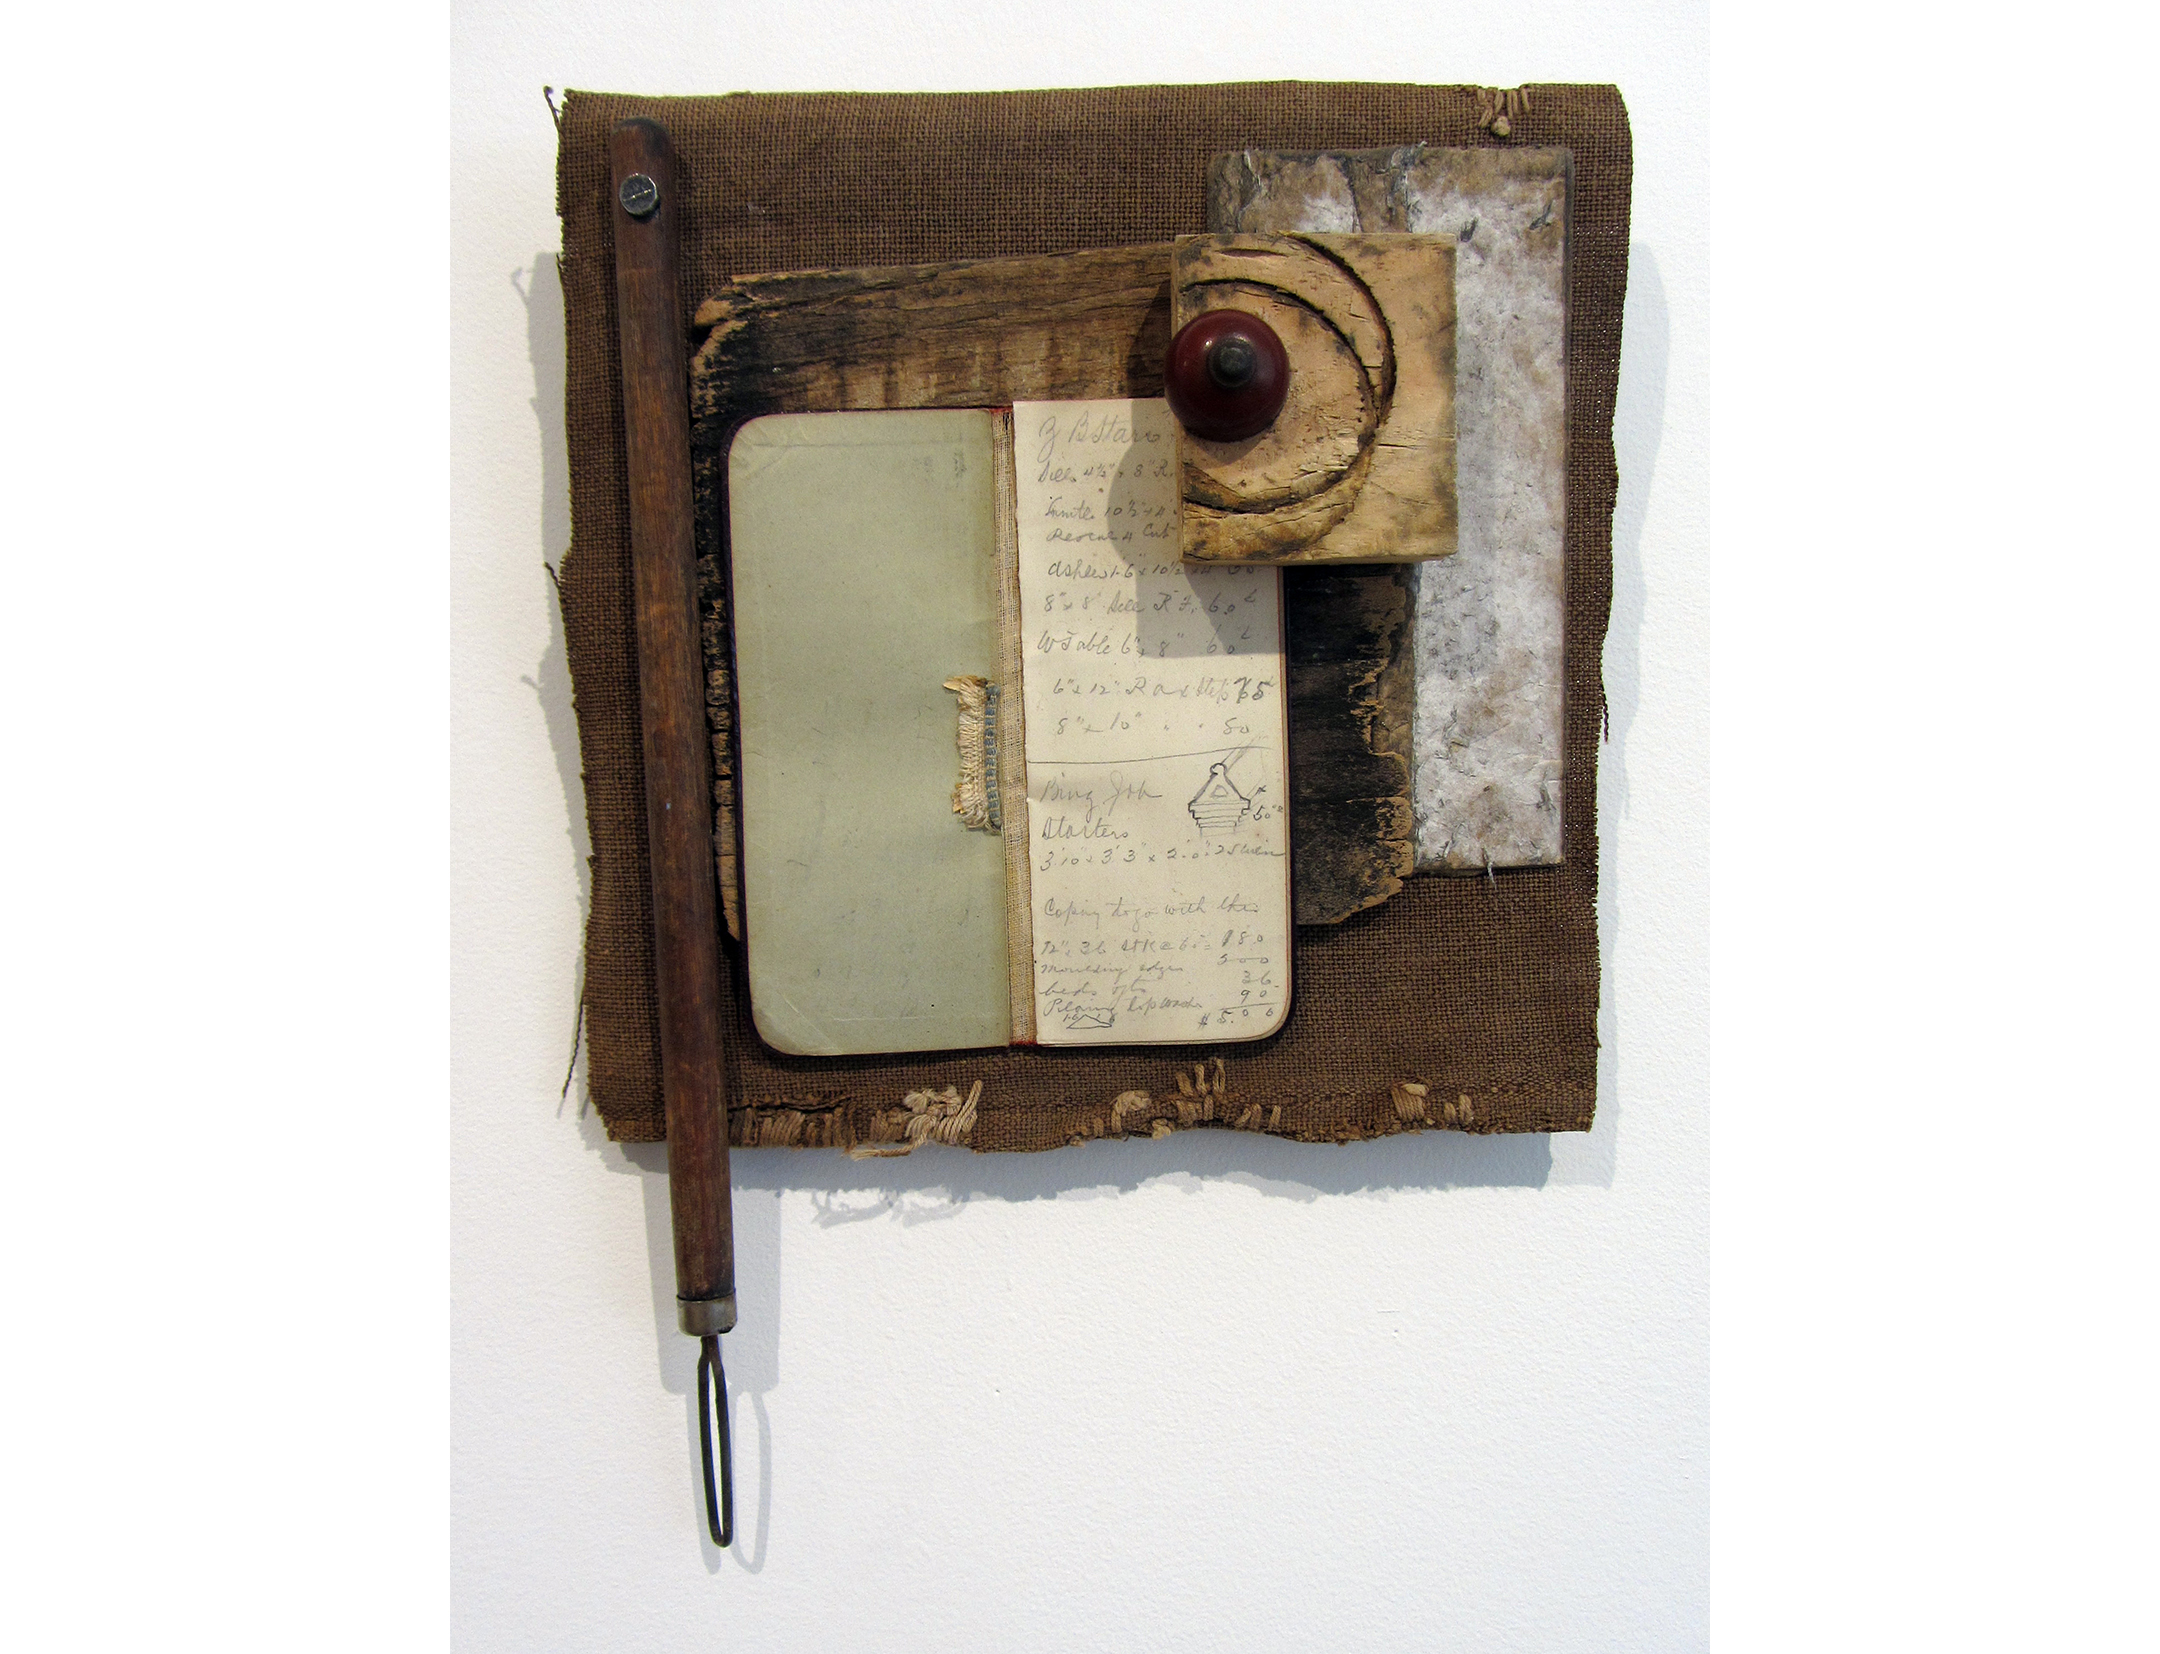 Liz Curtin, A Few Small Repairs I A Book Worth Reading, 2017, Mixed Media, 9 x 12.5 x 2.5 inches, $475.JPG